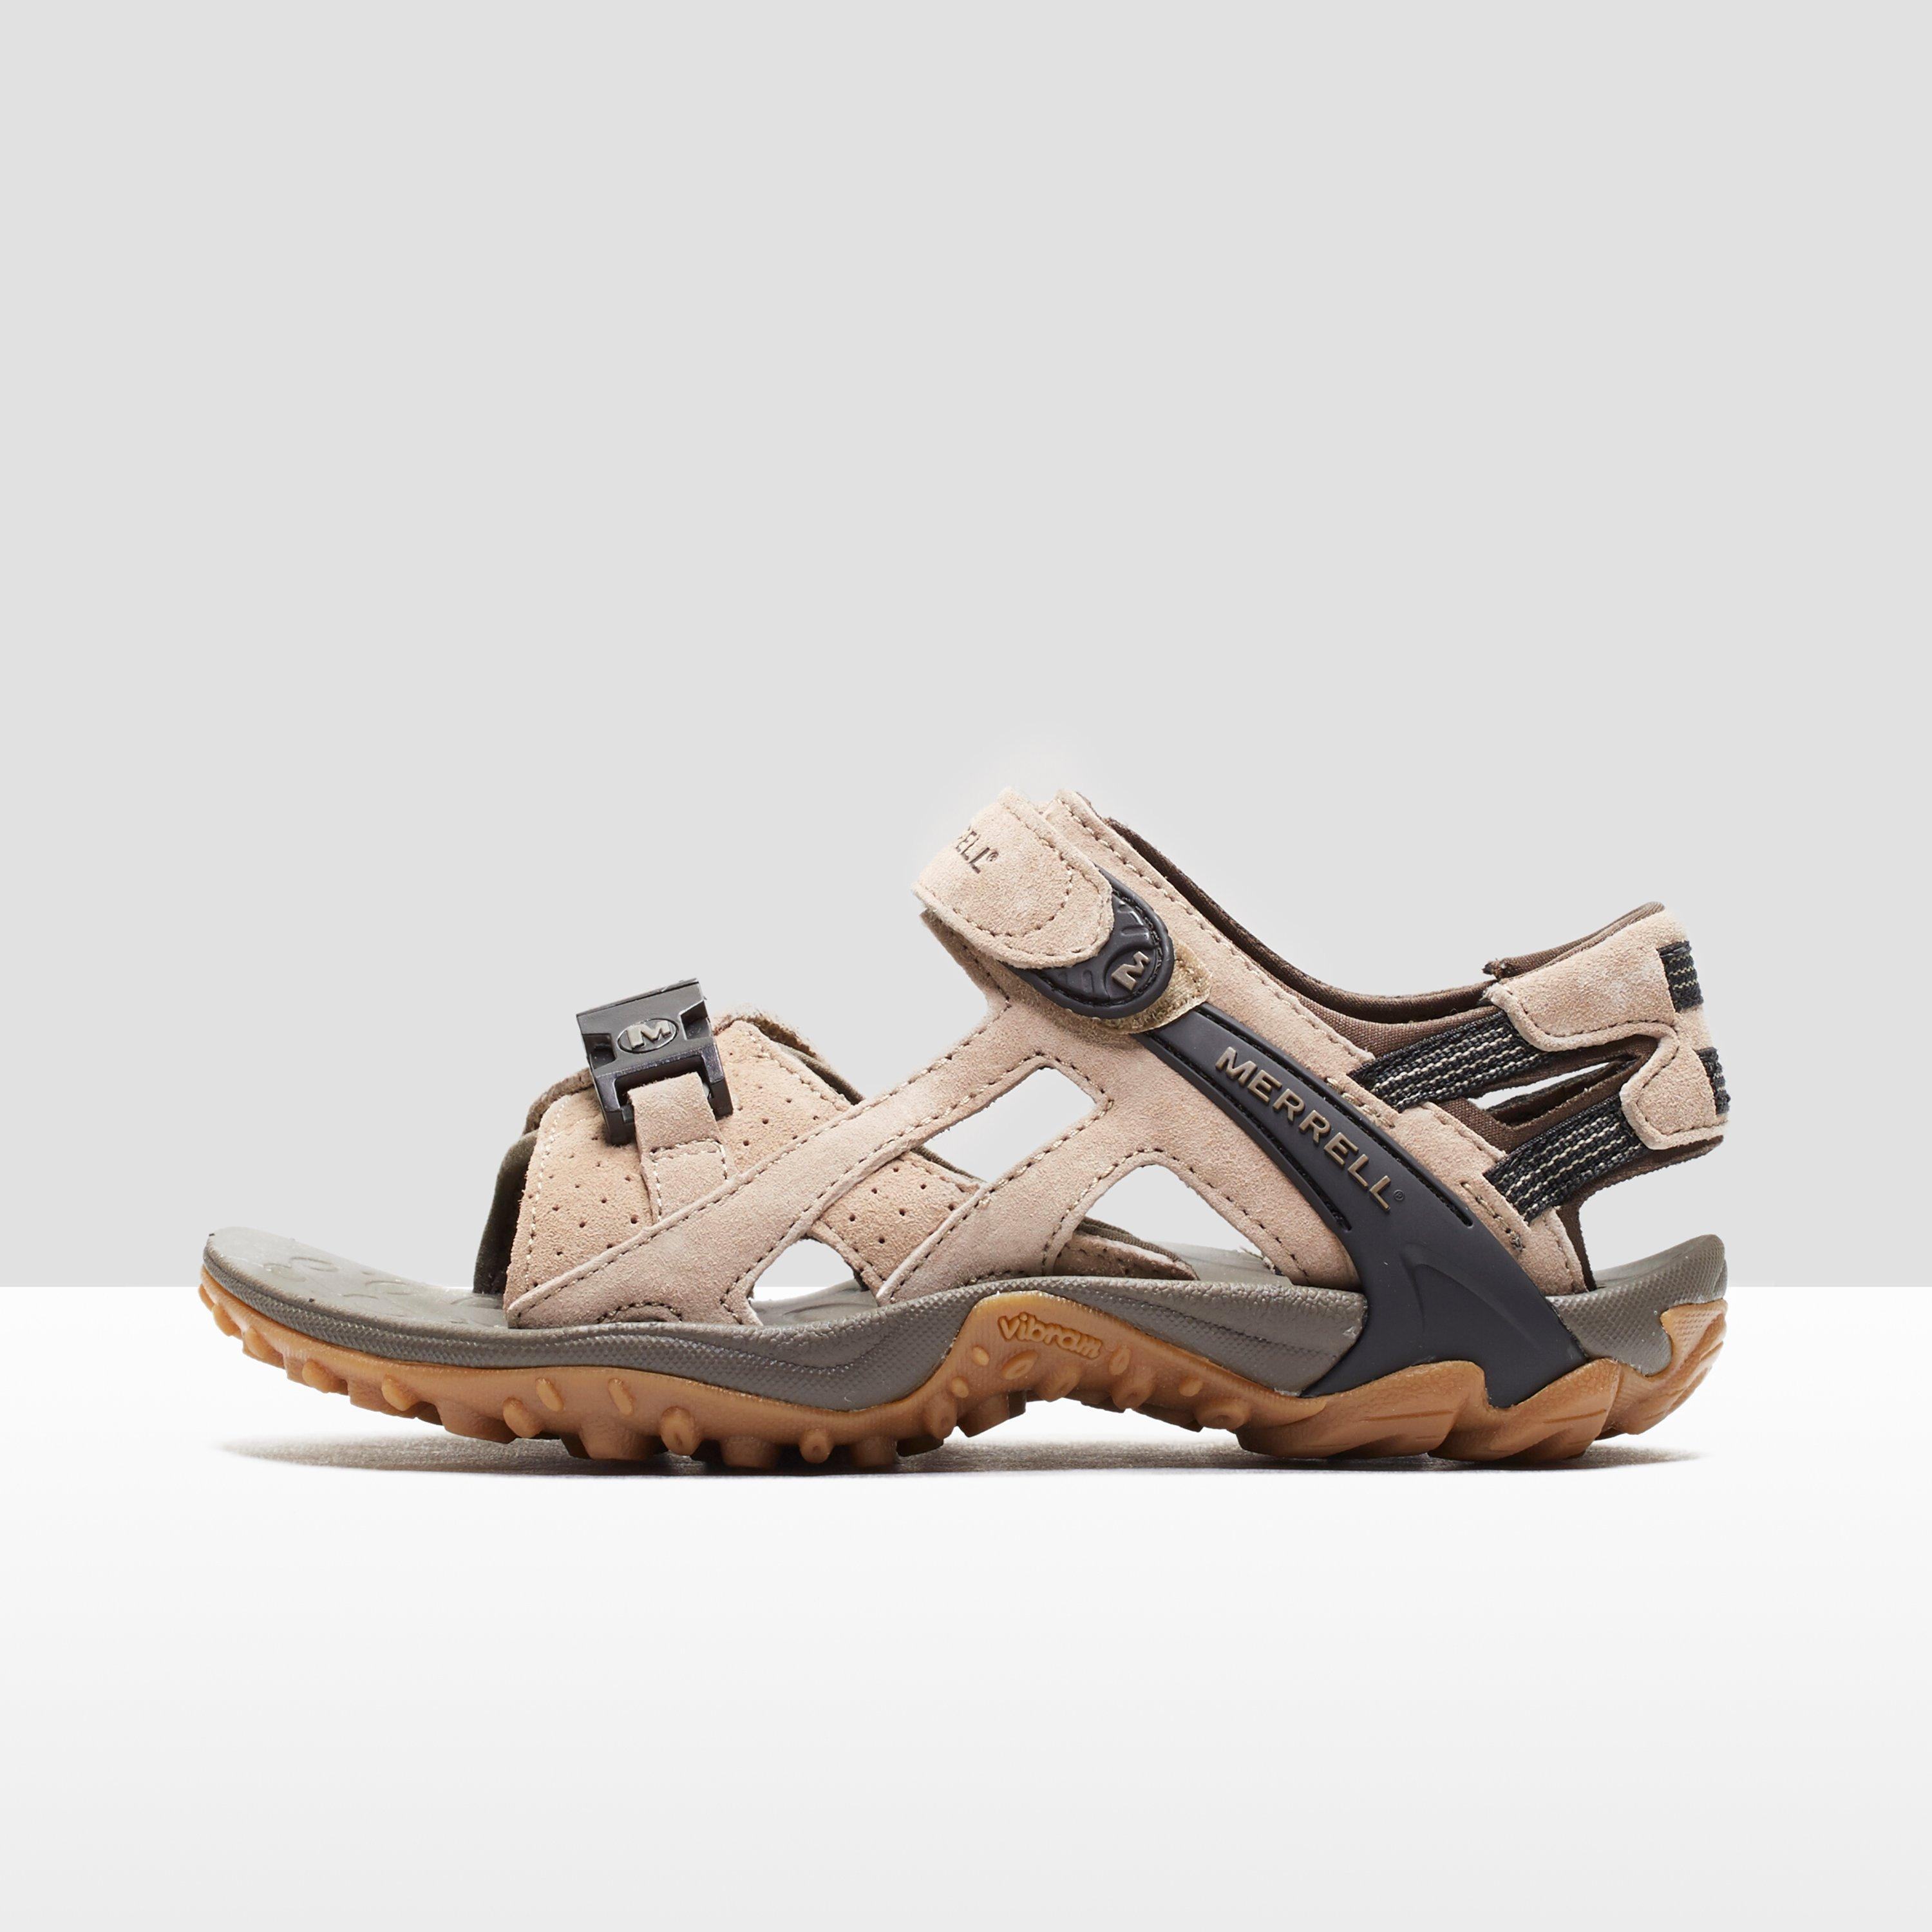 525058be670b Details about Merrell Kahuna III Women s Walking Sandals Taupe